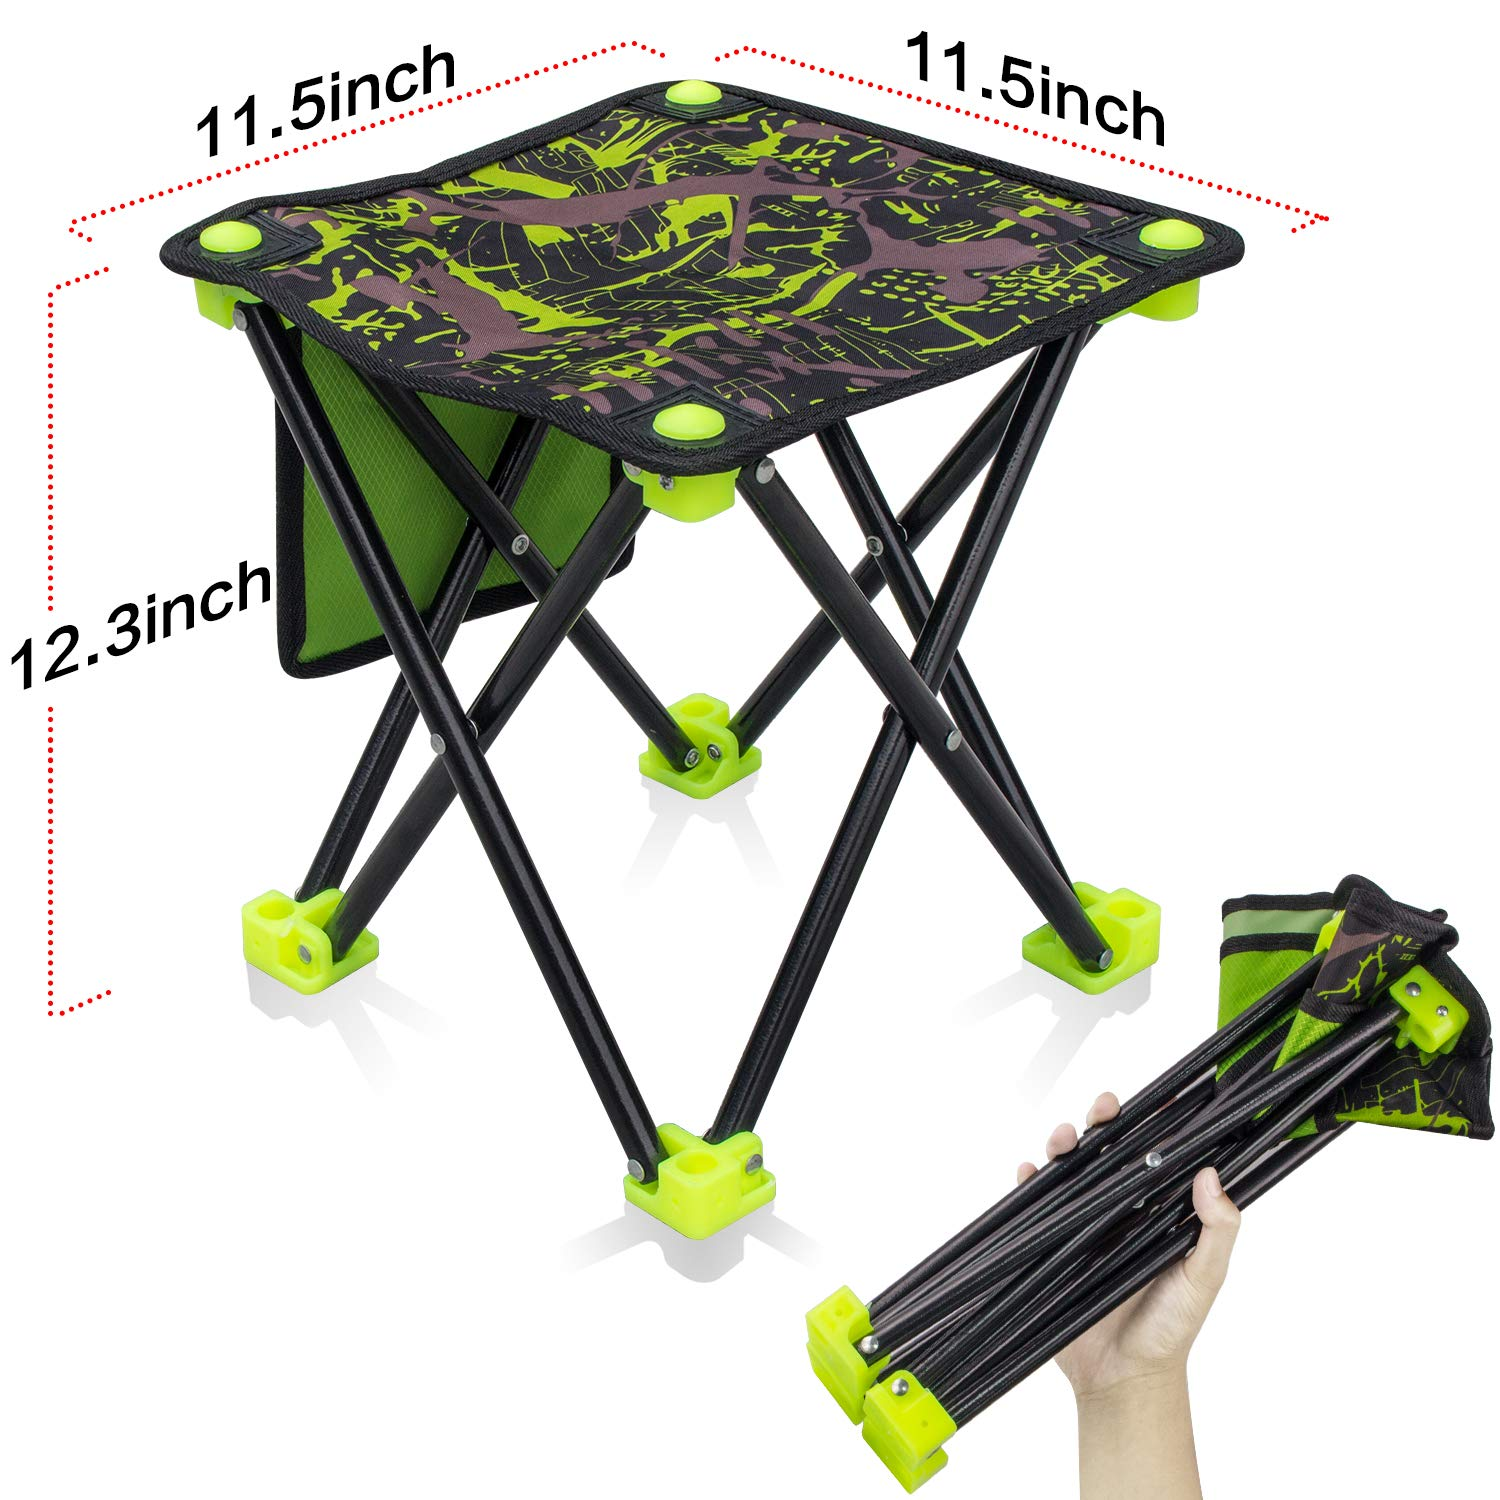 Mini Quick Folding Camping Portable Stool Slacker Chair Seat Foot Rest for Outdoor Beach Fishing Hiking BBQ Garden Picnic Travel Mountaineering Golf Party Seating Field Small Stool Green Camouflage